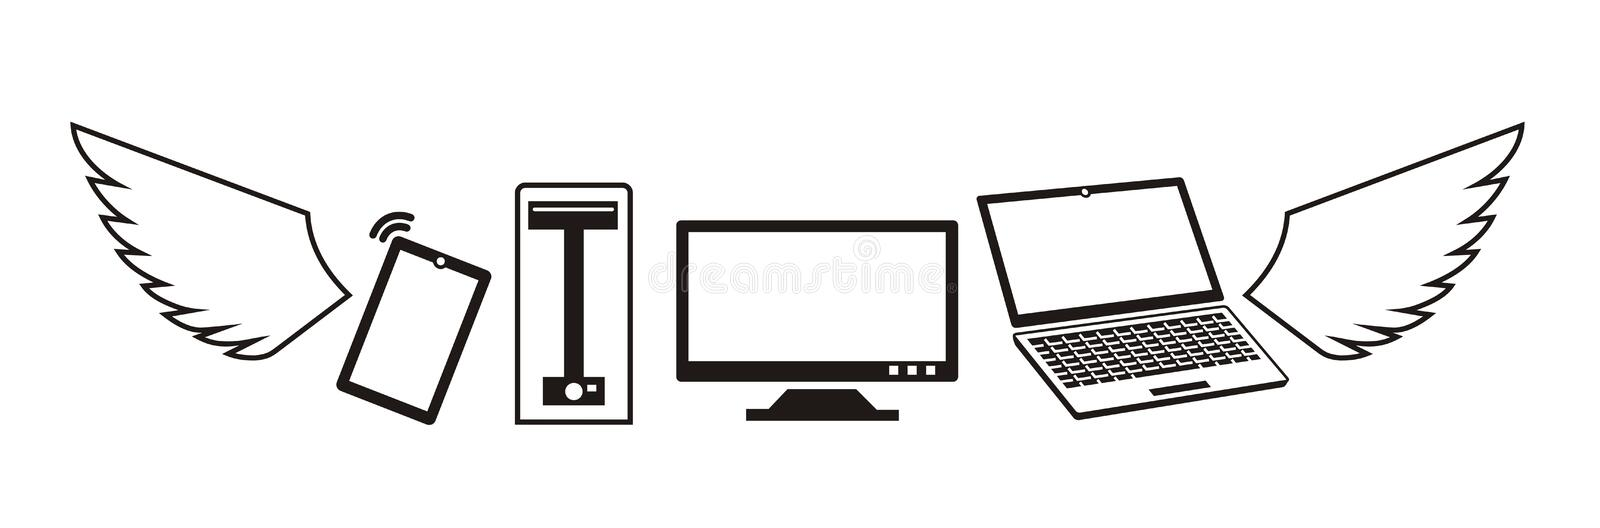 Flying computers and devices logo in vector. Flying computers and mobile devices on white background. Company logo in vector. Black-and-white version of image royalty free illustration